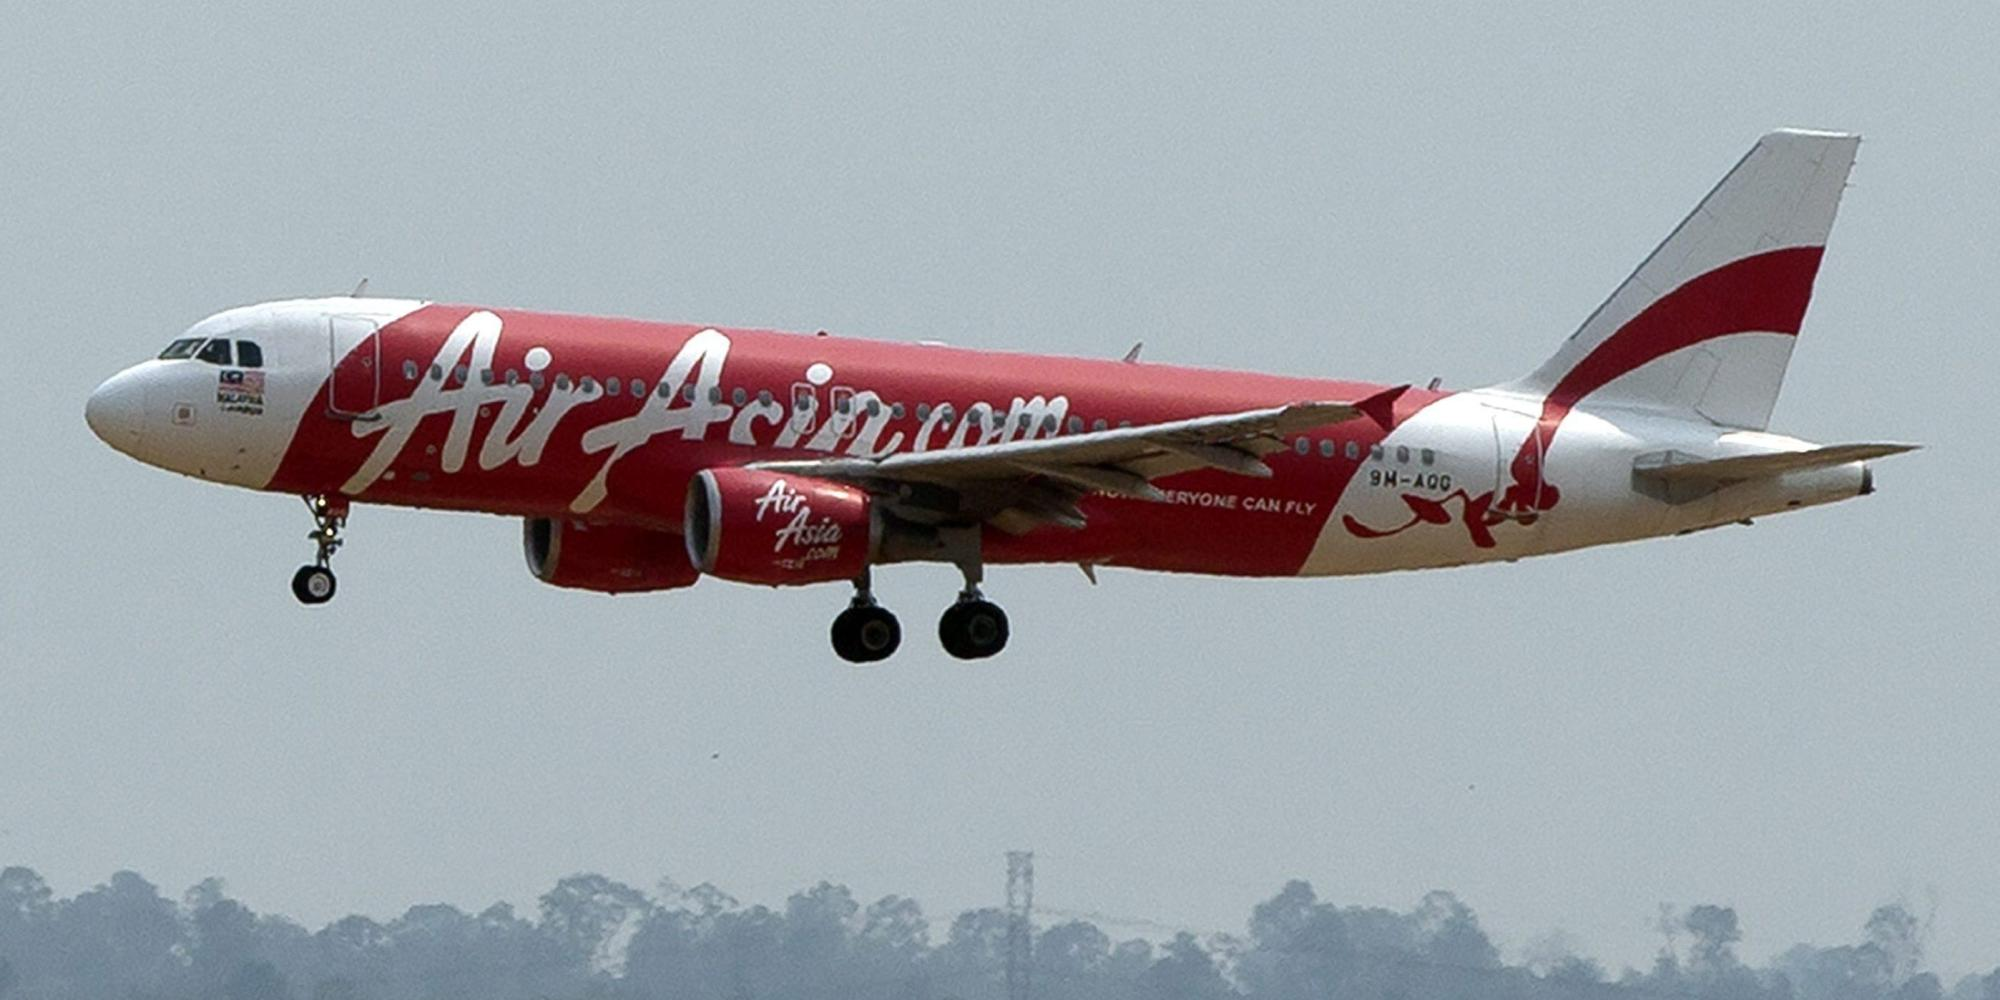 Air Asia confirms Singapore-bound airplane missing